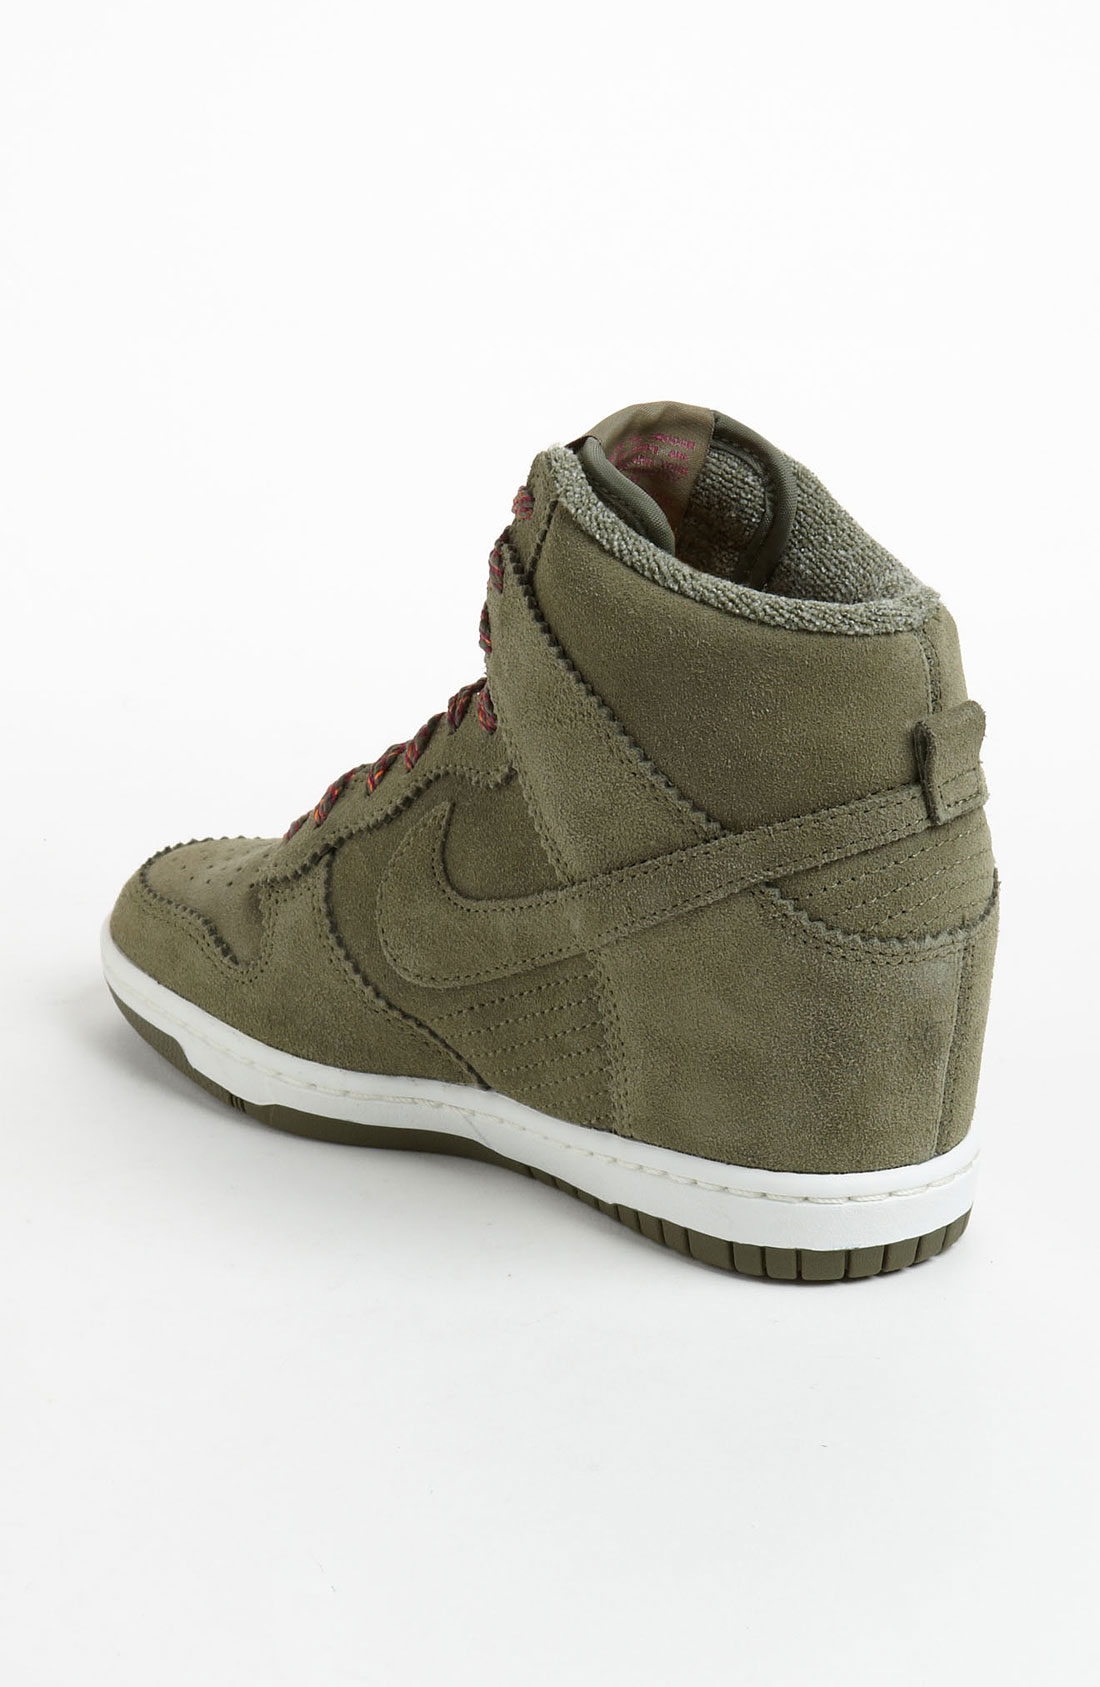 sale retailer 04d77 f3a10 Previously sold at  Nordstrom · Women s Nike Dunk Sky Hi .